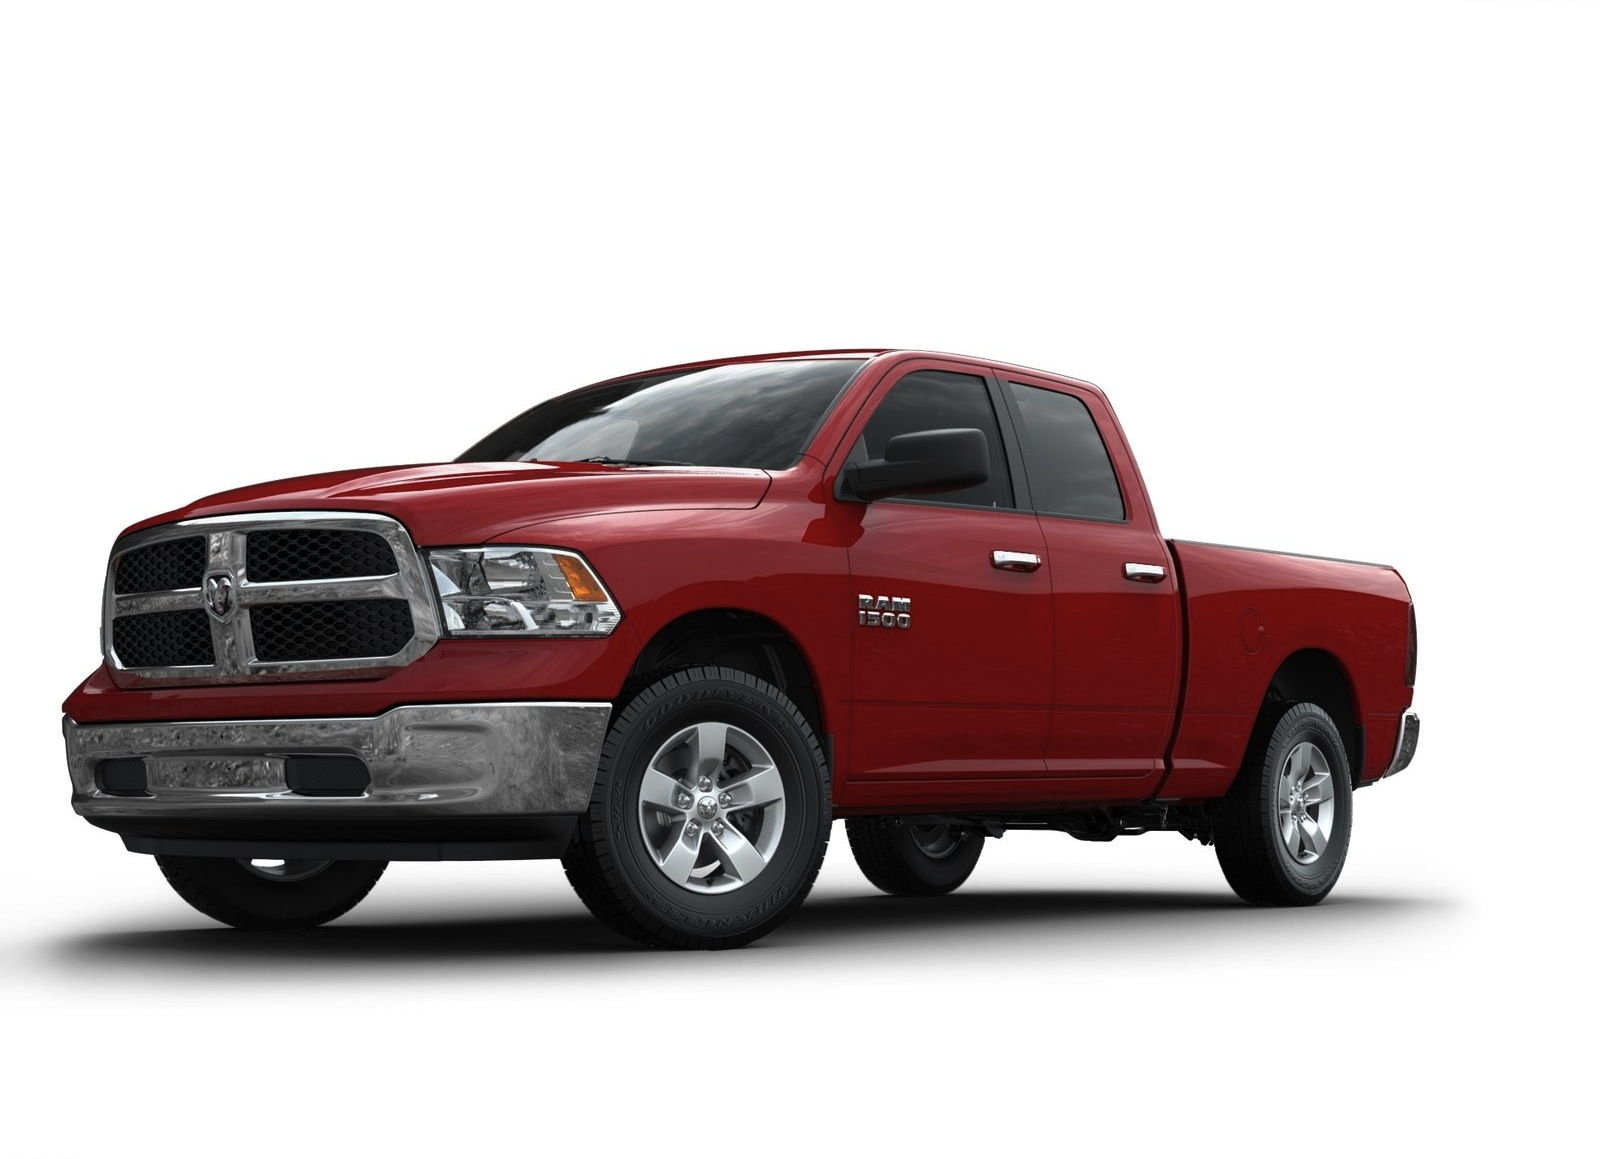 2014 dodge ram 1500 towing capacity autos post. Black Bedroom Furniture Sets. Home Design Ideas